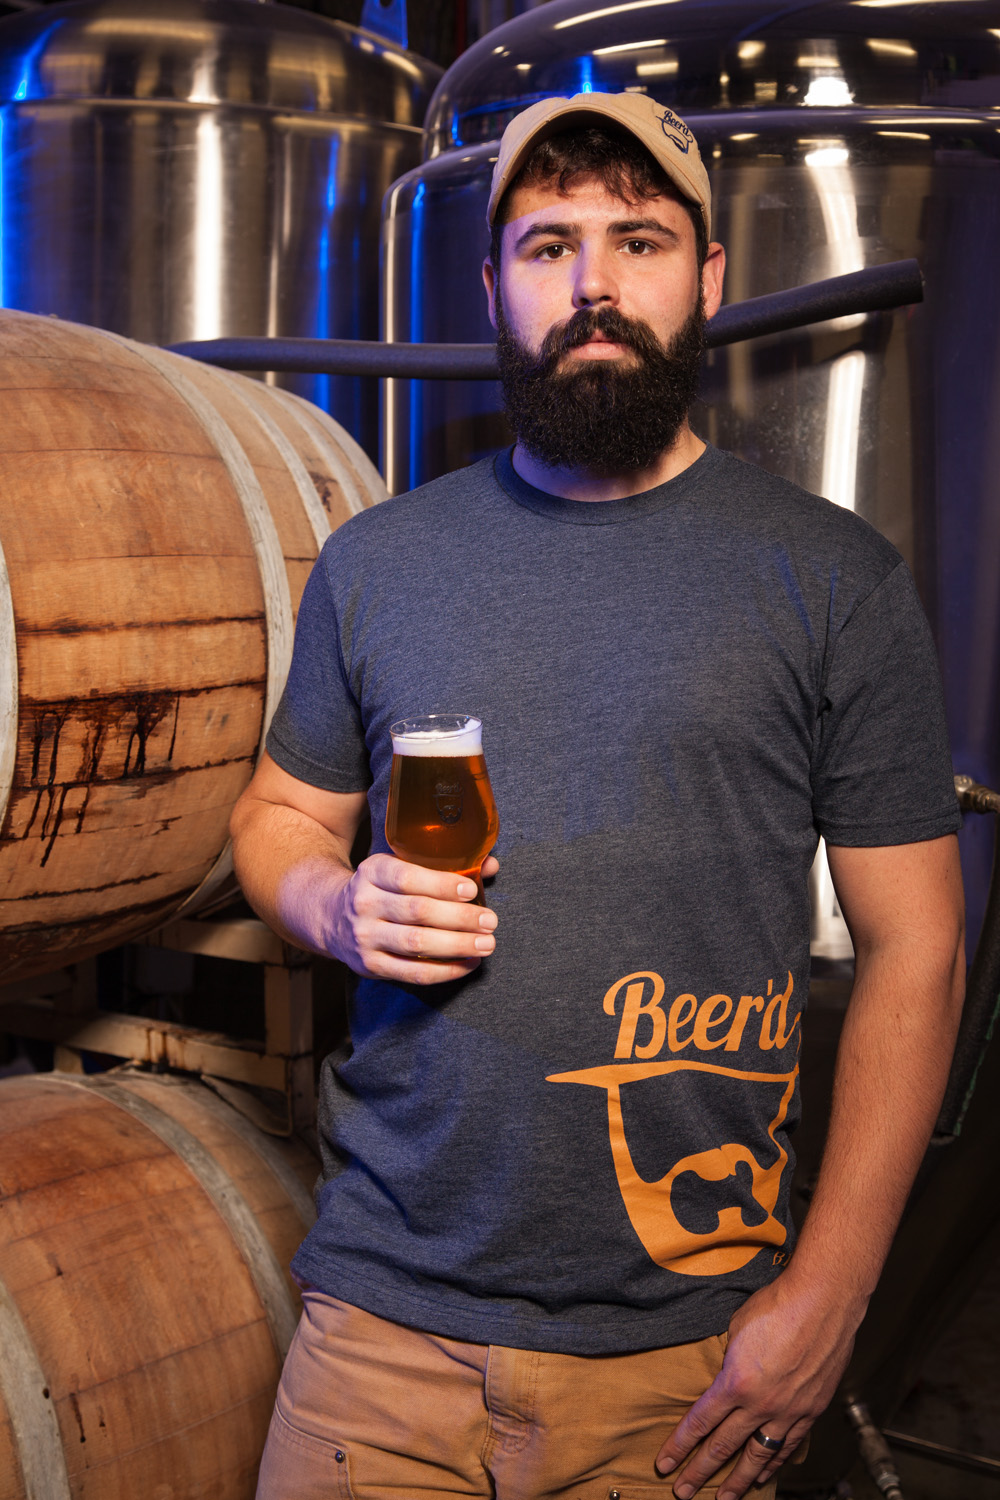 Aaren Simoncini, Brewmaster Beer'd Brewing Co. Stonington, CT Established in 2011